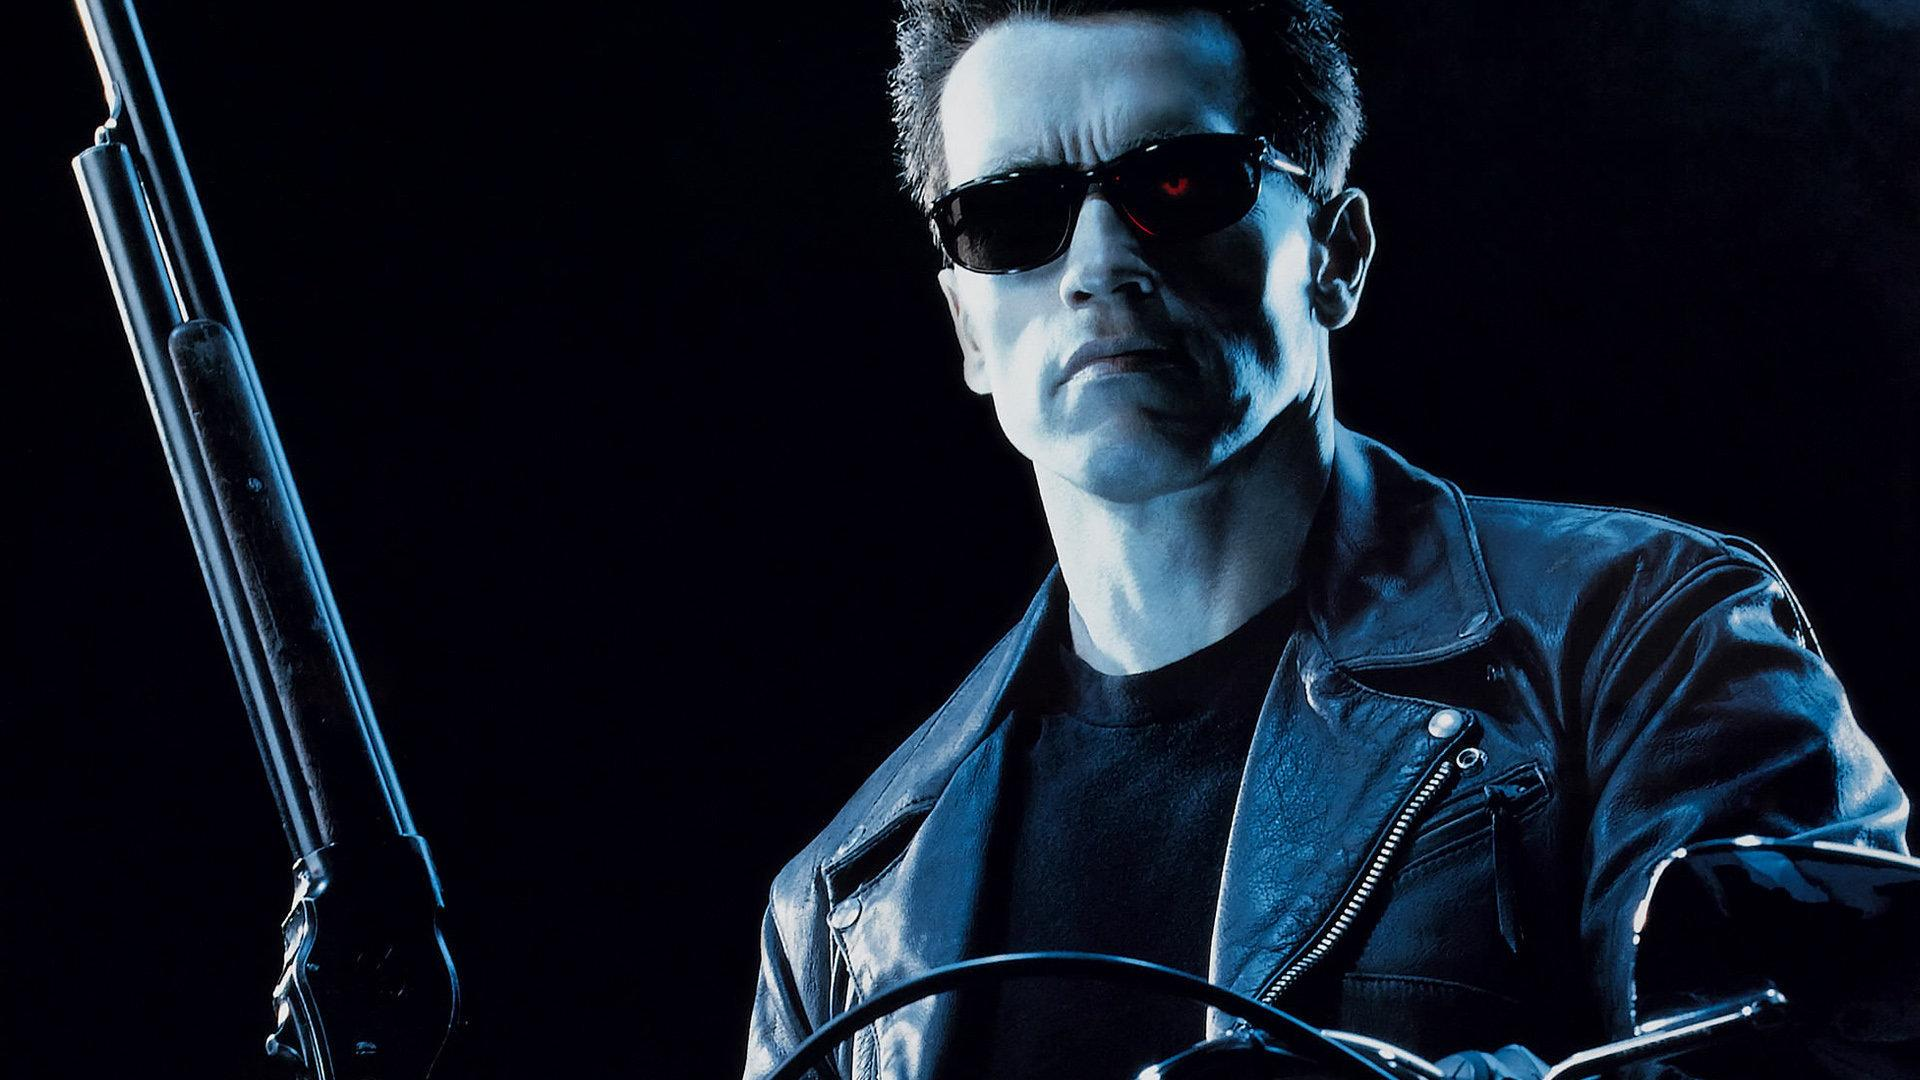 Terminator 2: Judgment Day HD Wallpaper | Background Image ...